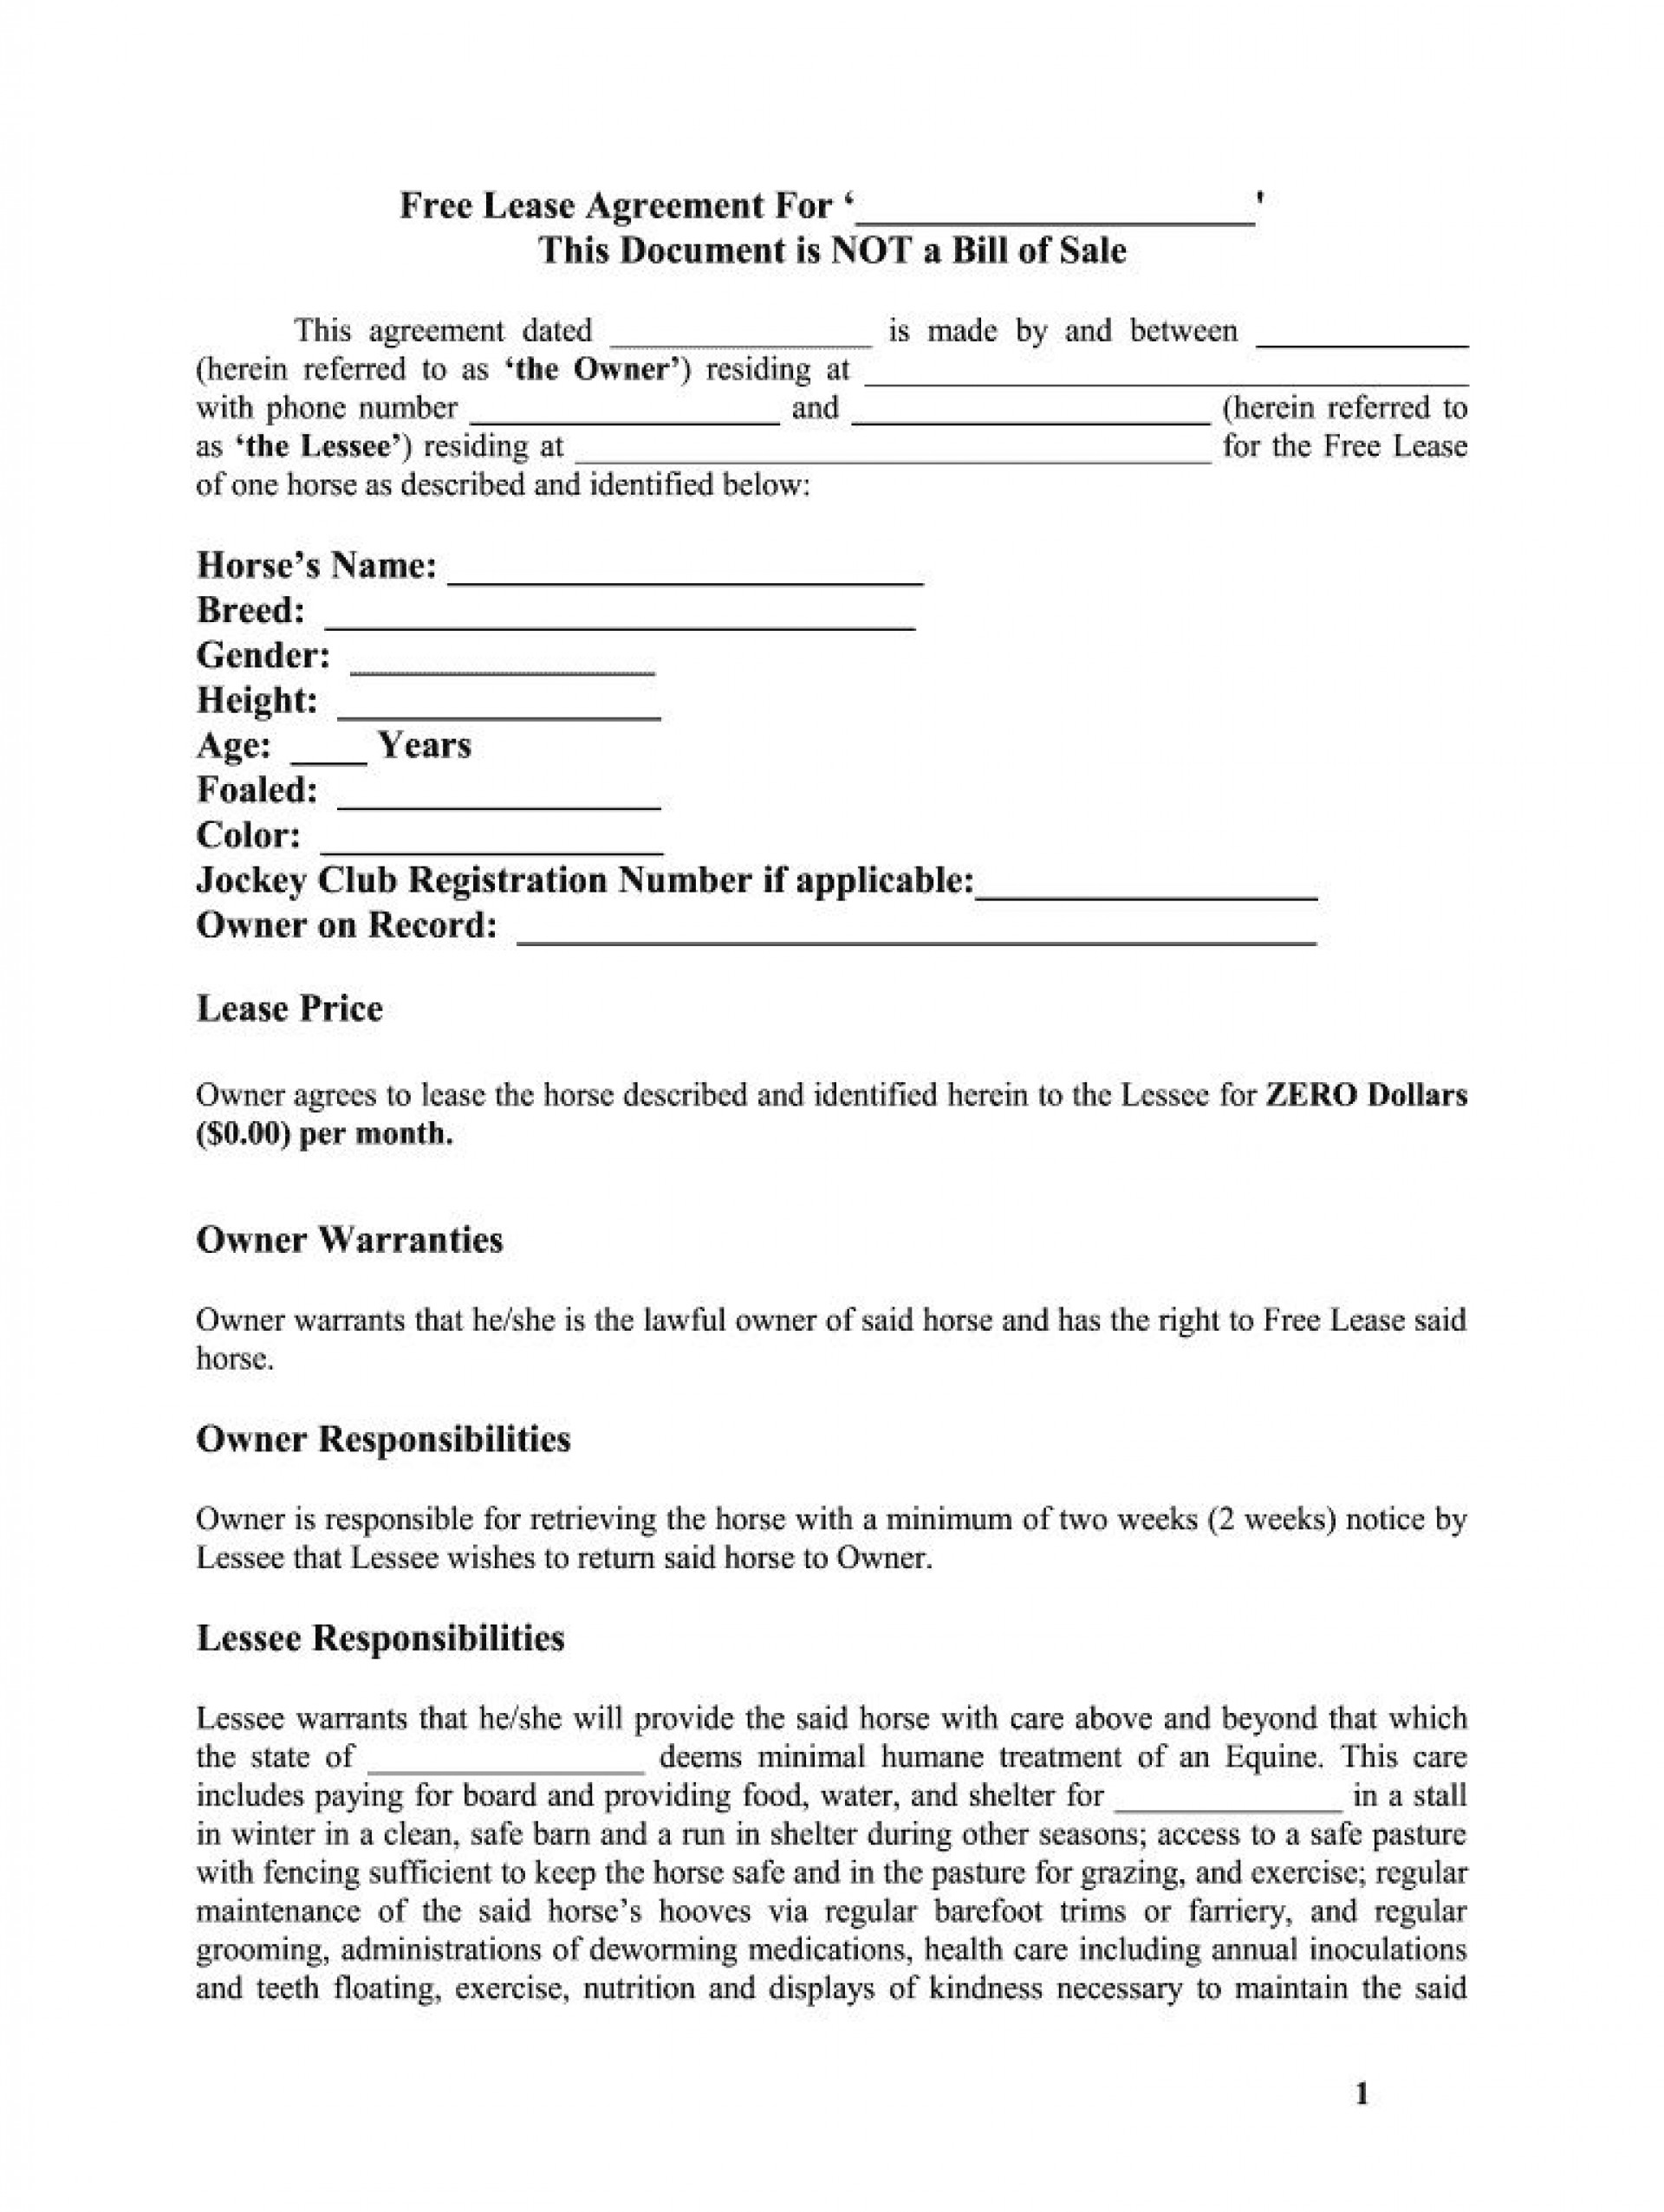 005 Formidable Free Lease Agreement Template Word Design  Doc Residential Commercial Uk1920